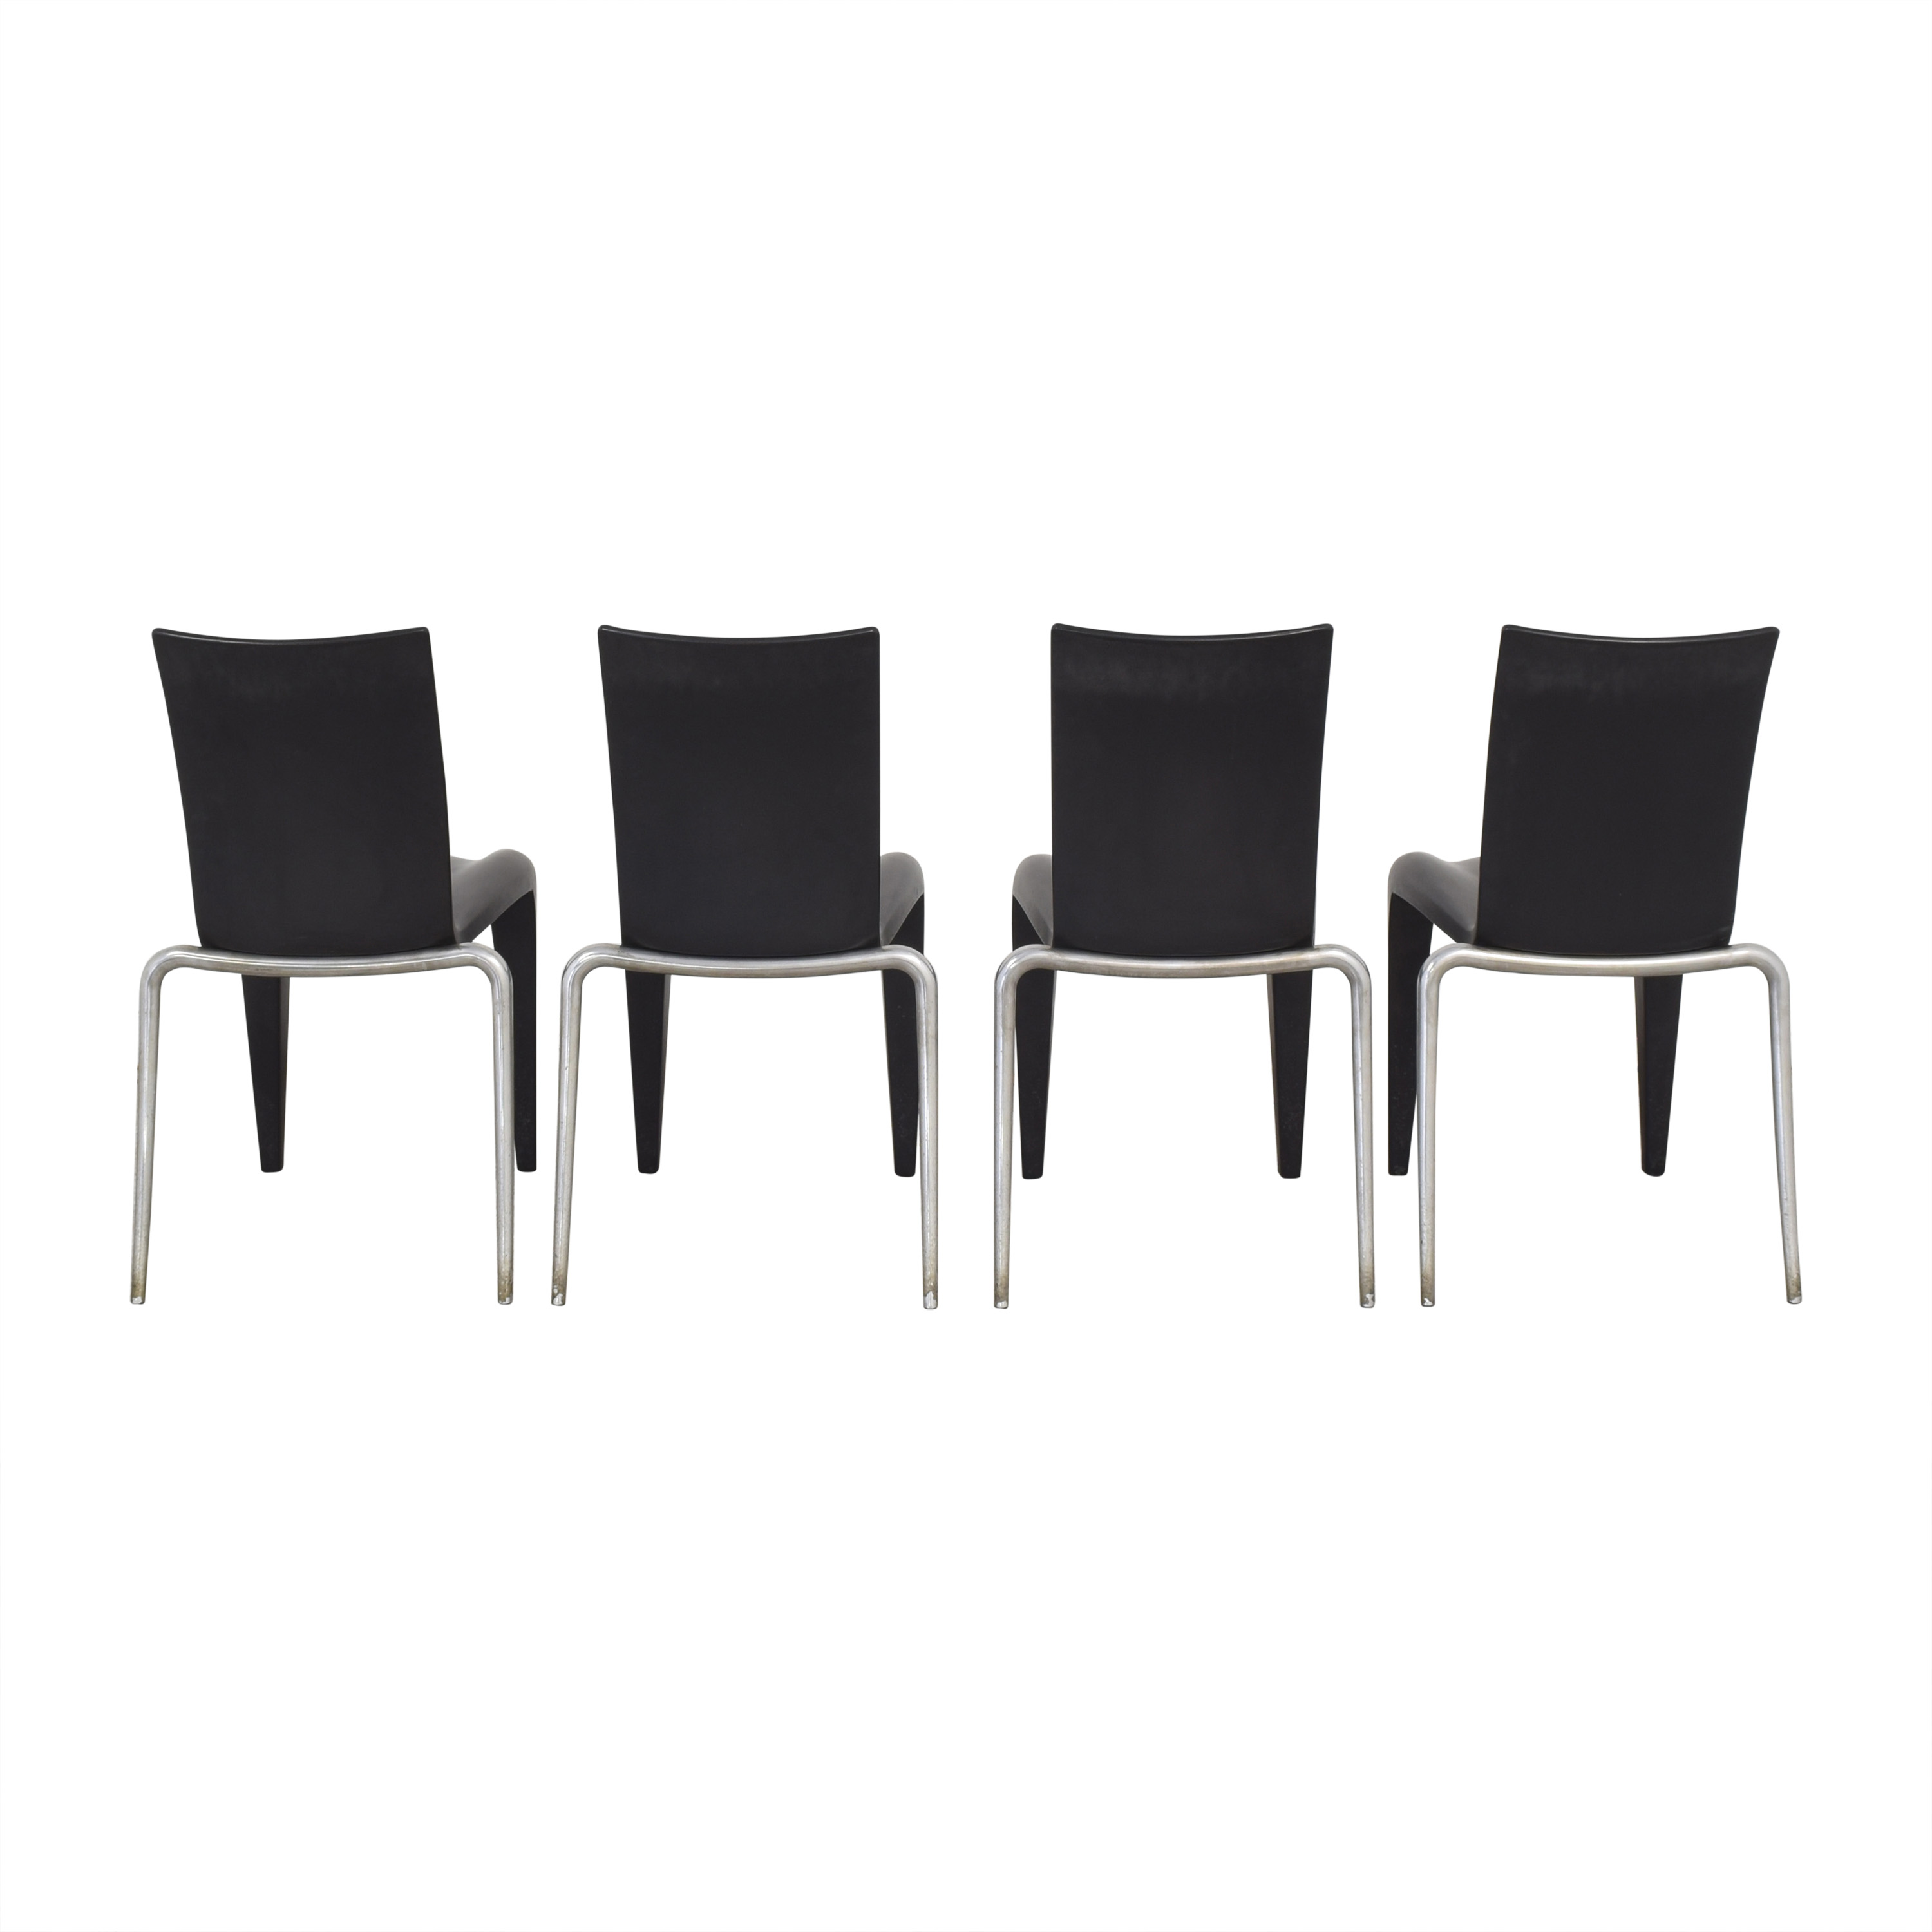 Vitra Vitra Louis 20 Dining Chairs by Phillipe Starck dimensions